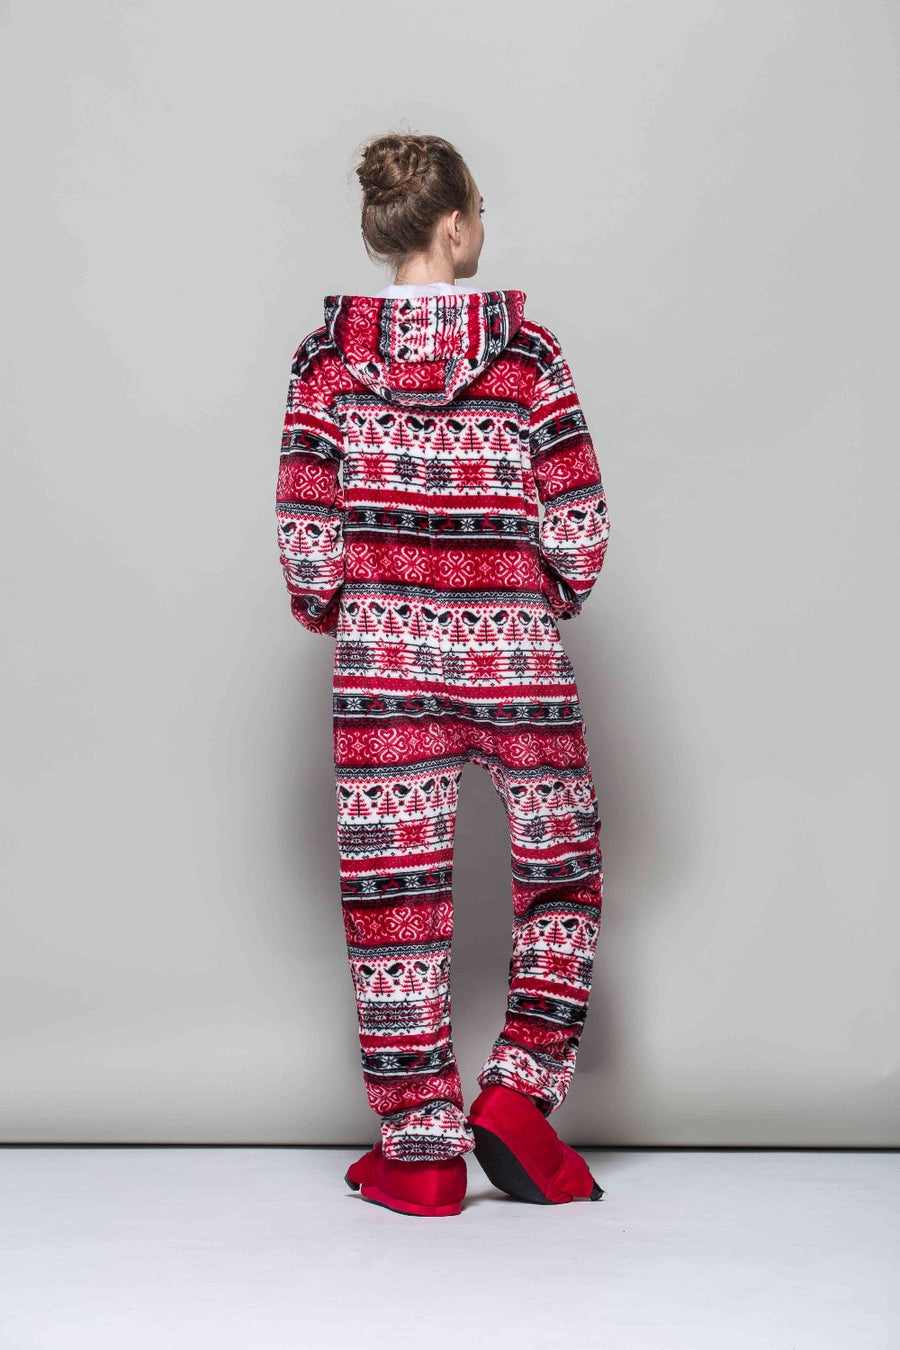 Red Christmas Onesie - SnugLife | Epic Coziness